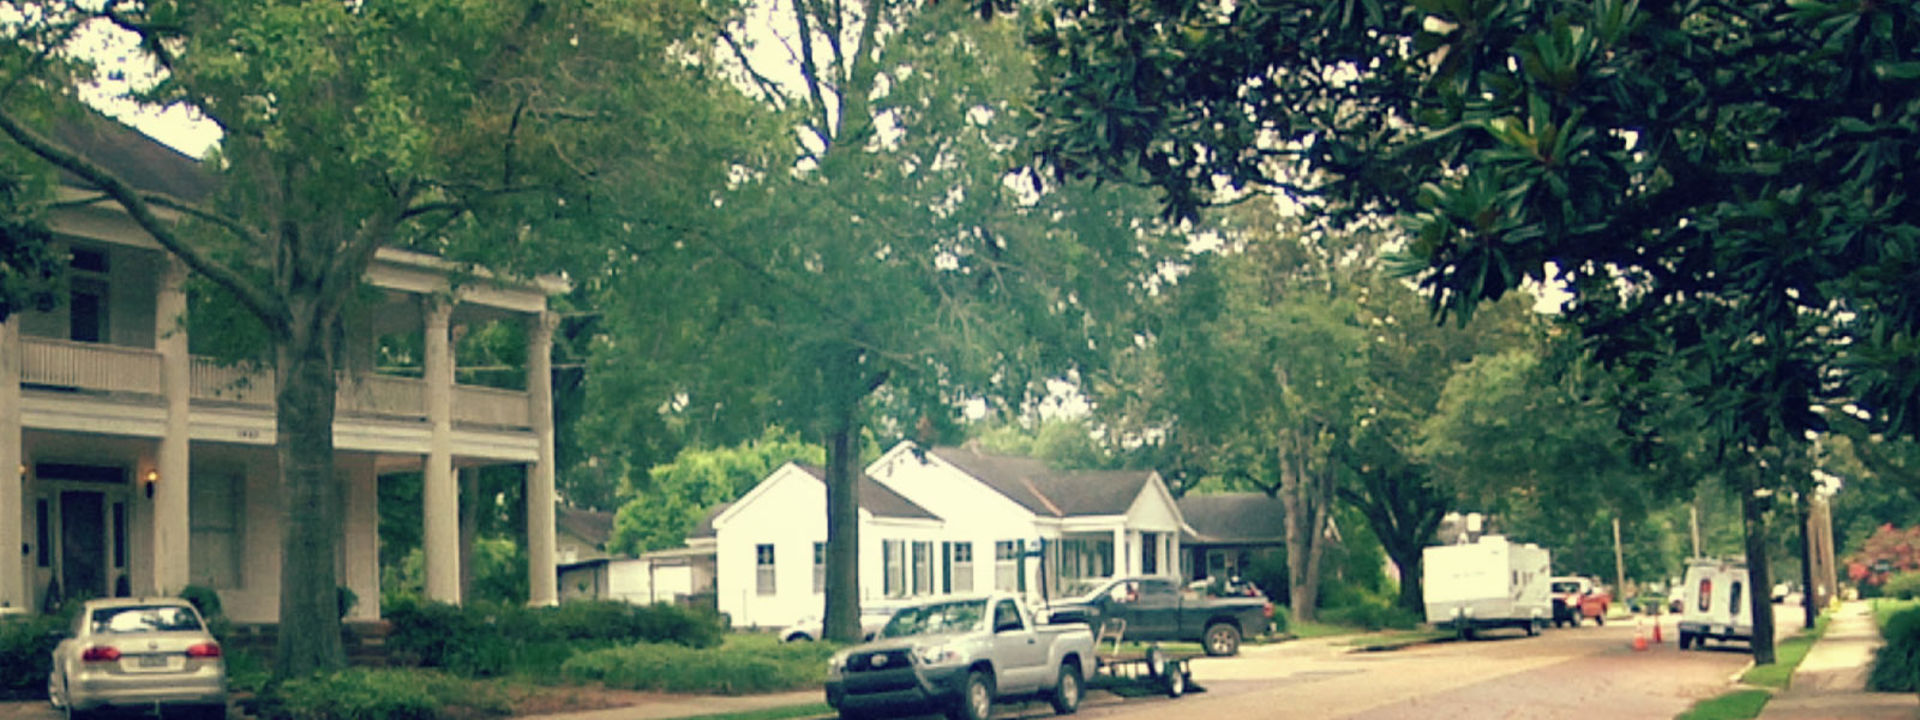 Hundred Oaks Neighborhood